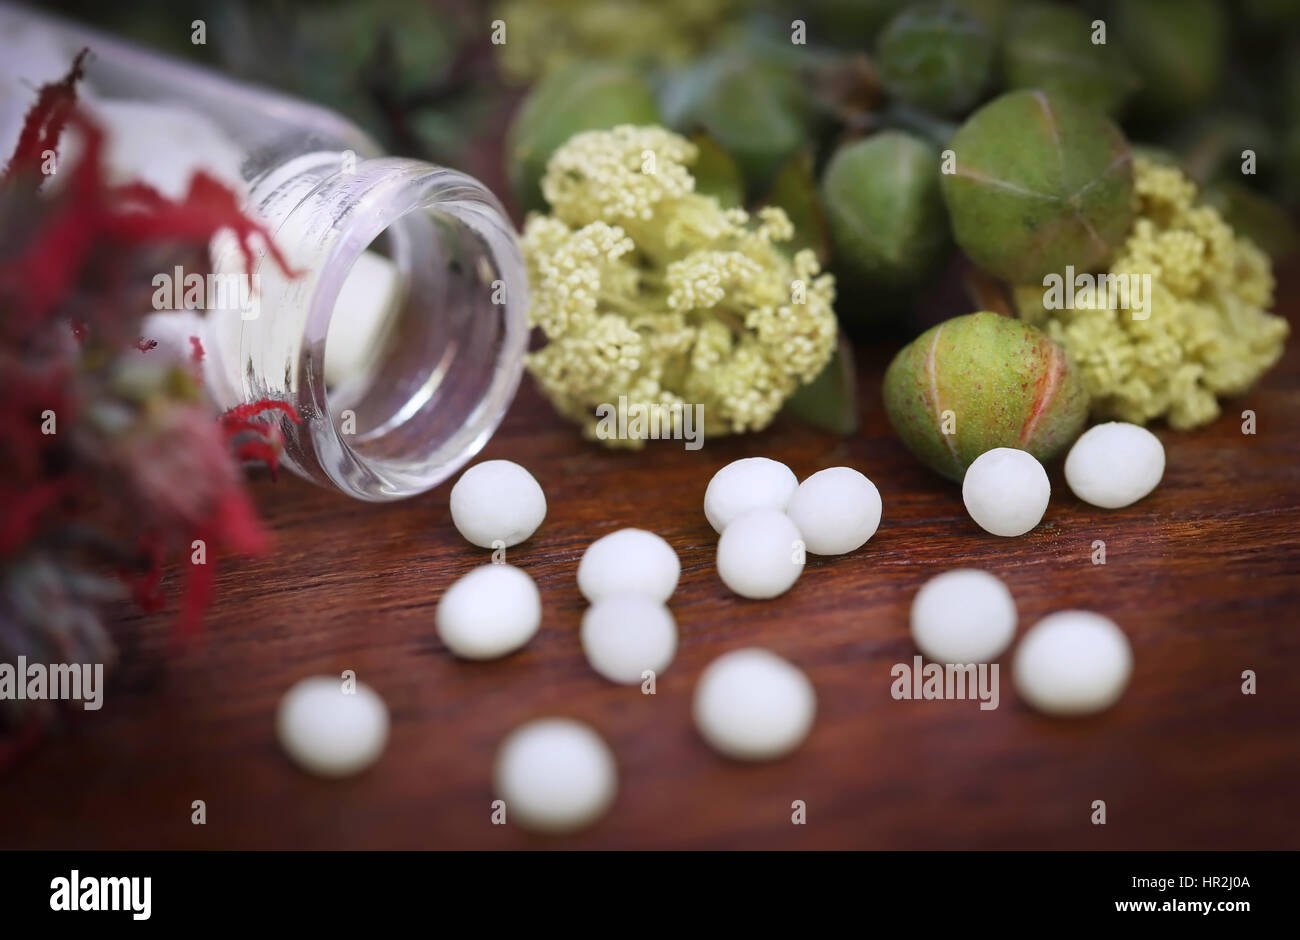 Homeopathy globules with some herbs on wooden surface - Stock Image